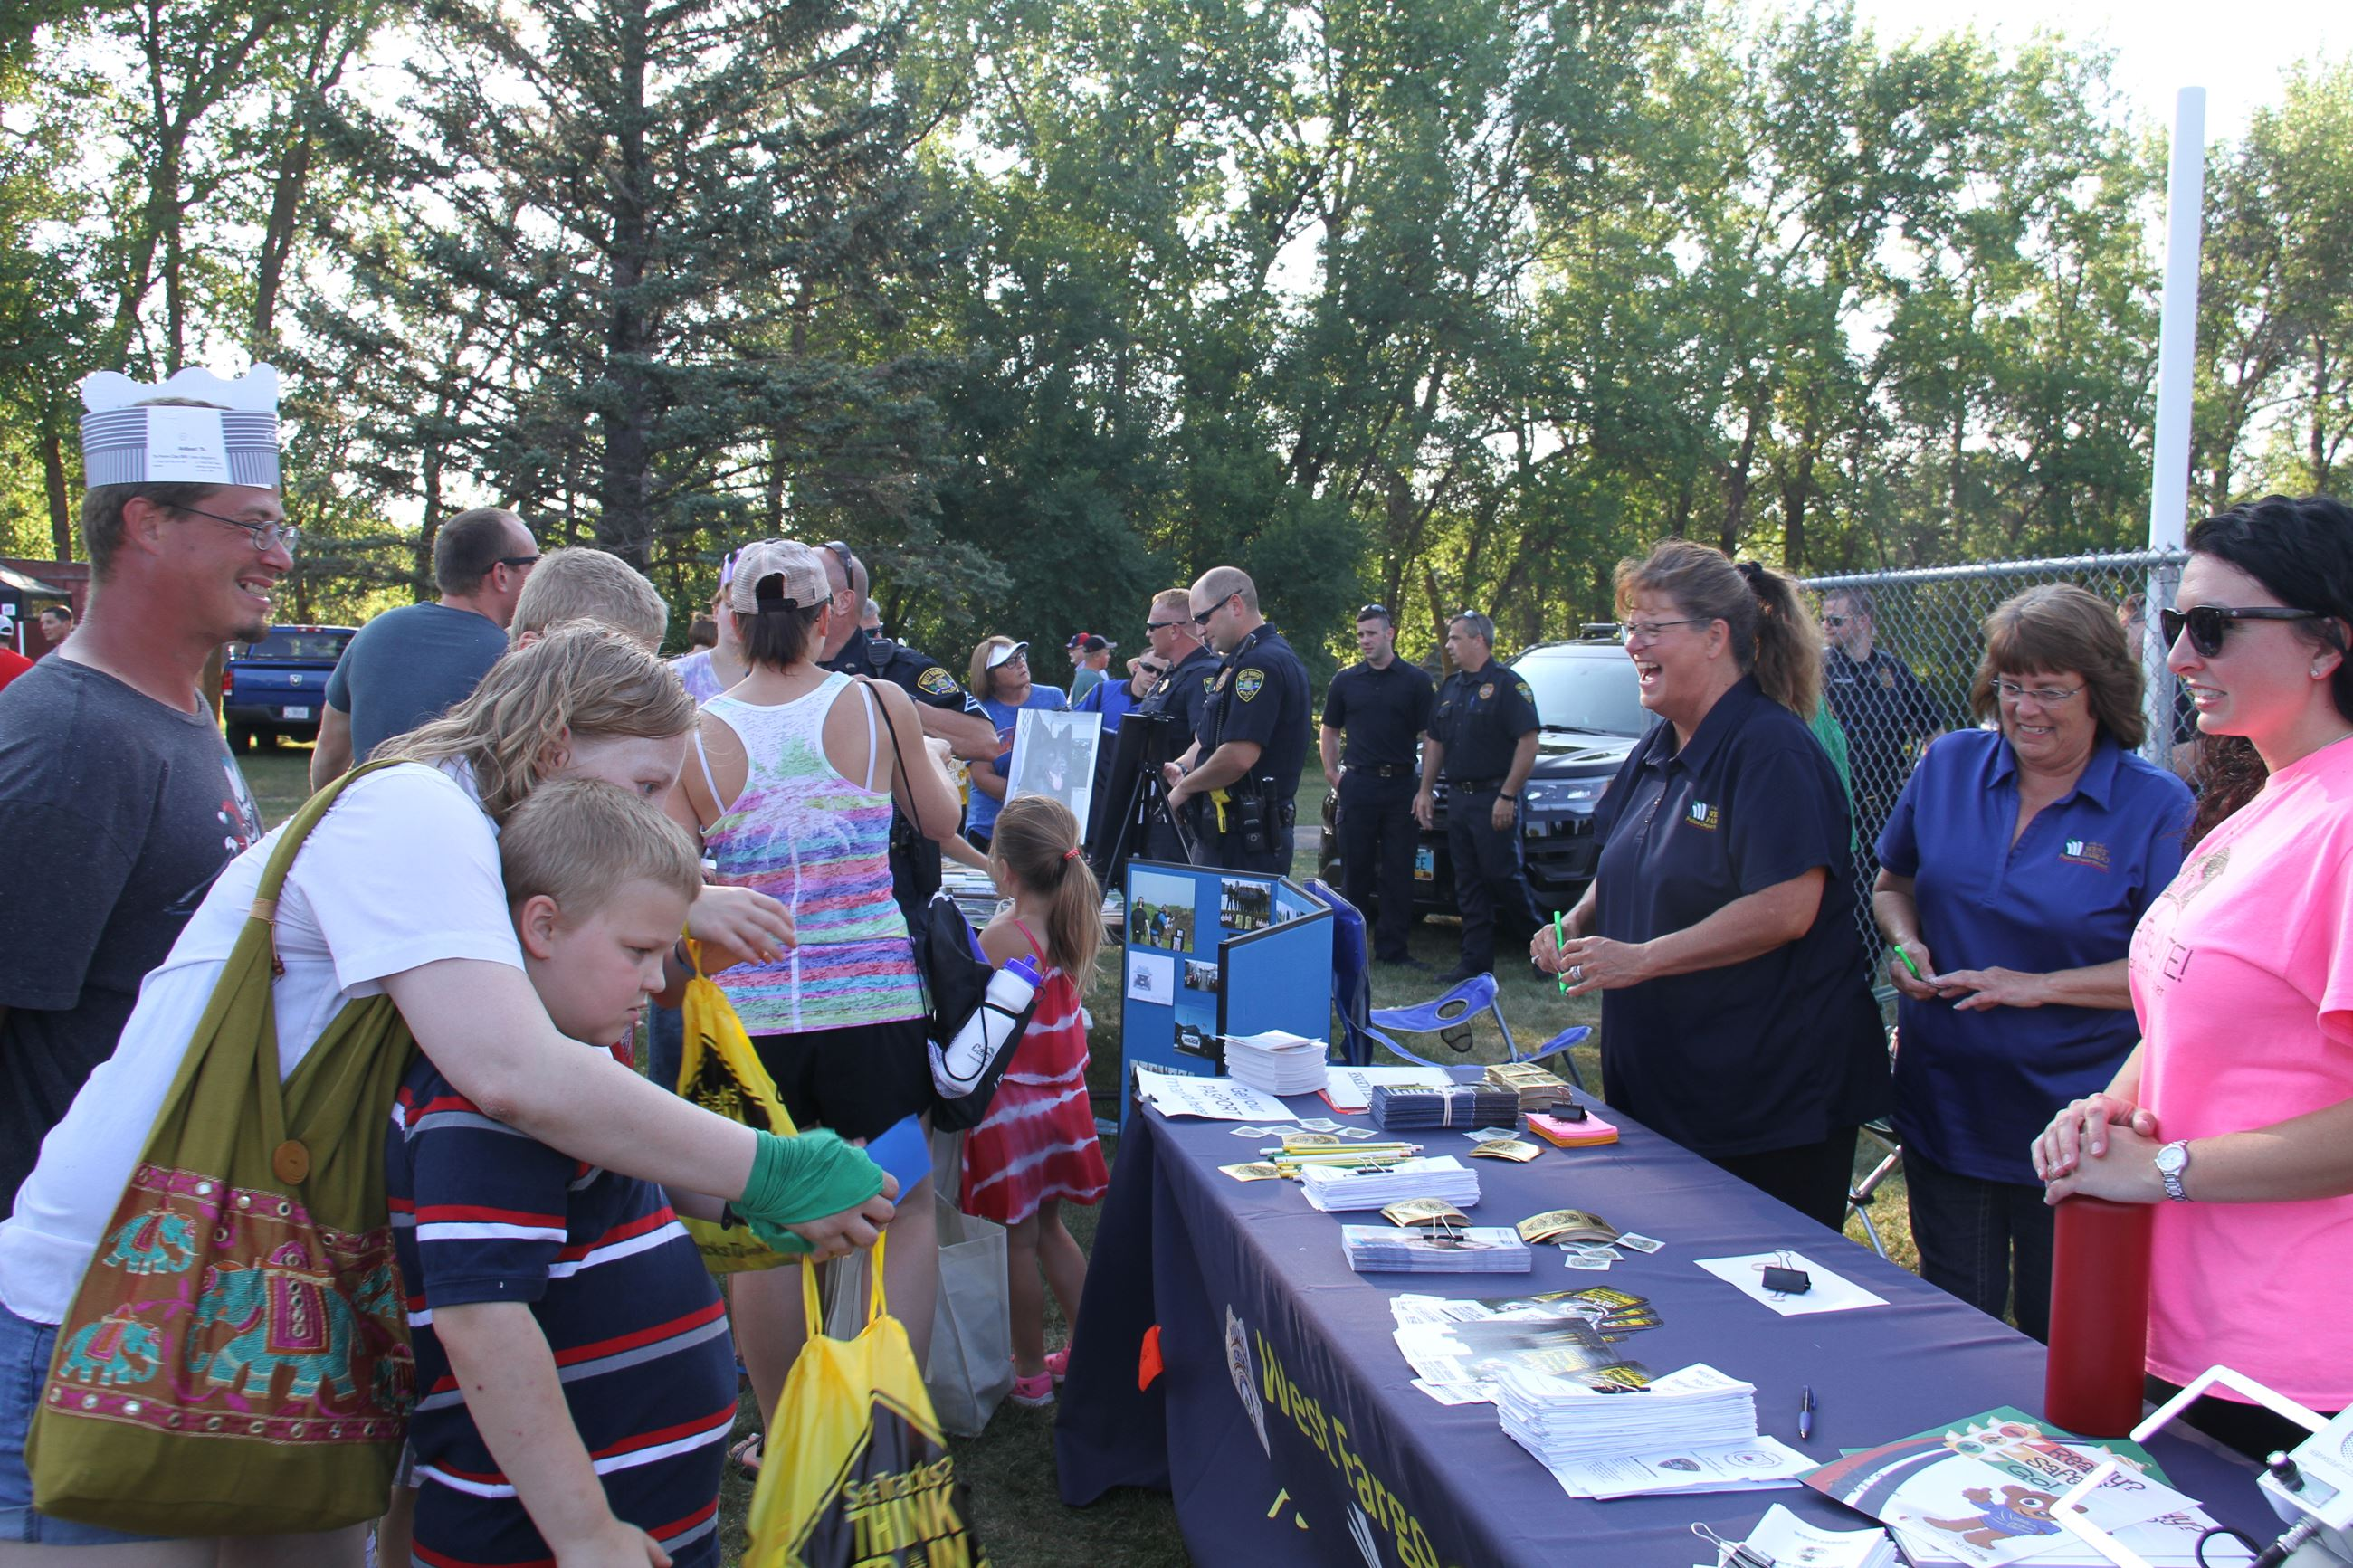 Attendees visit the West Fargo Police Department table to learn more about the department